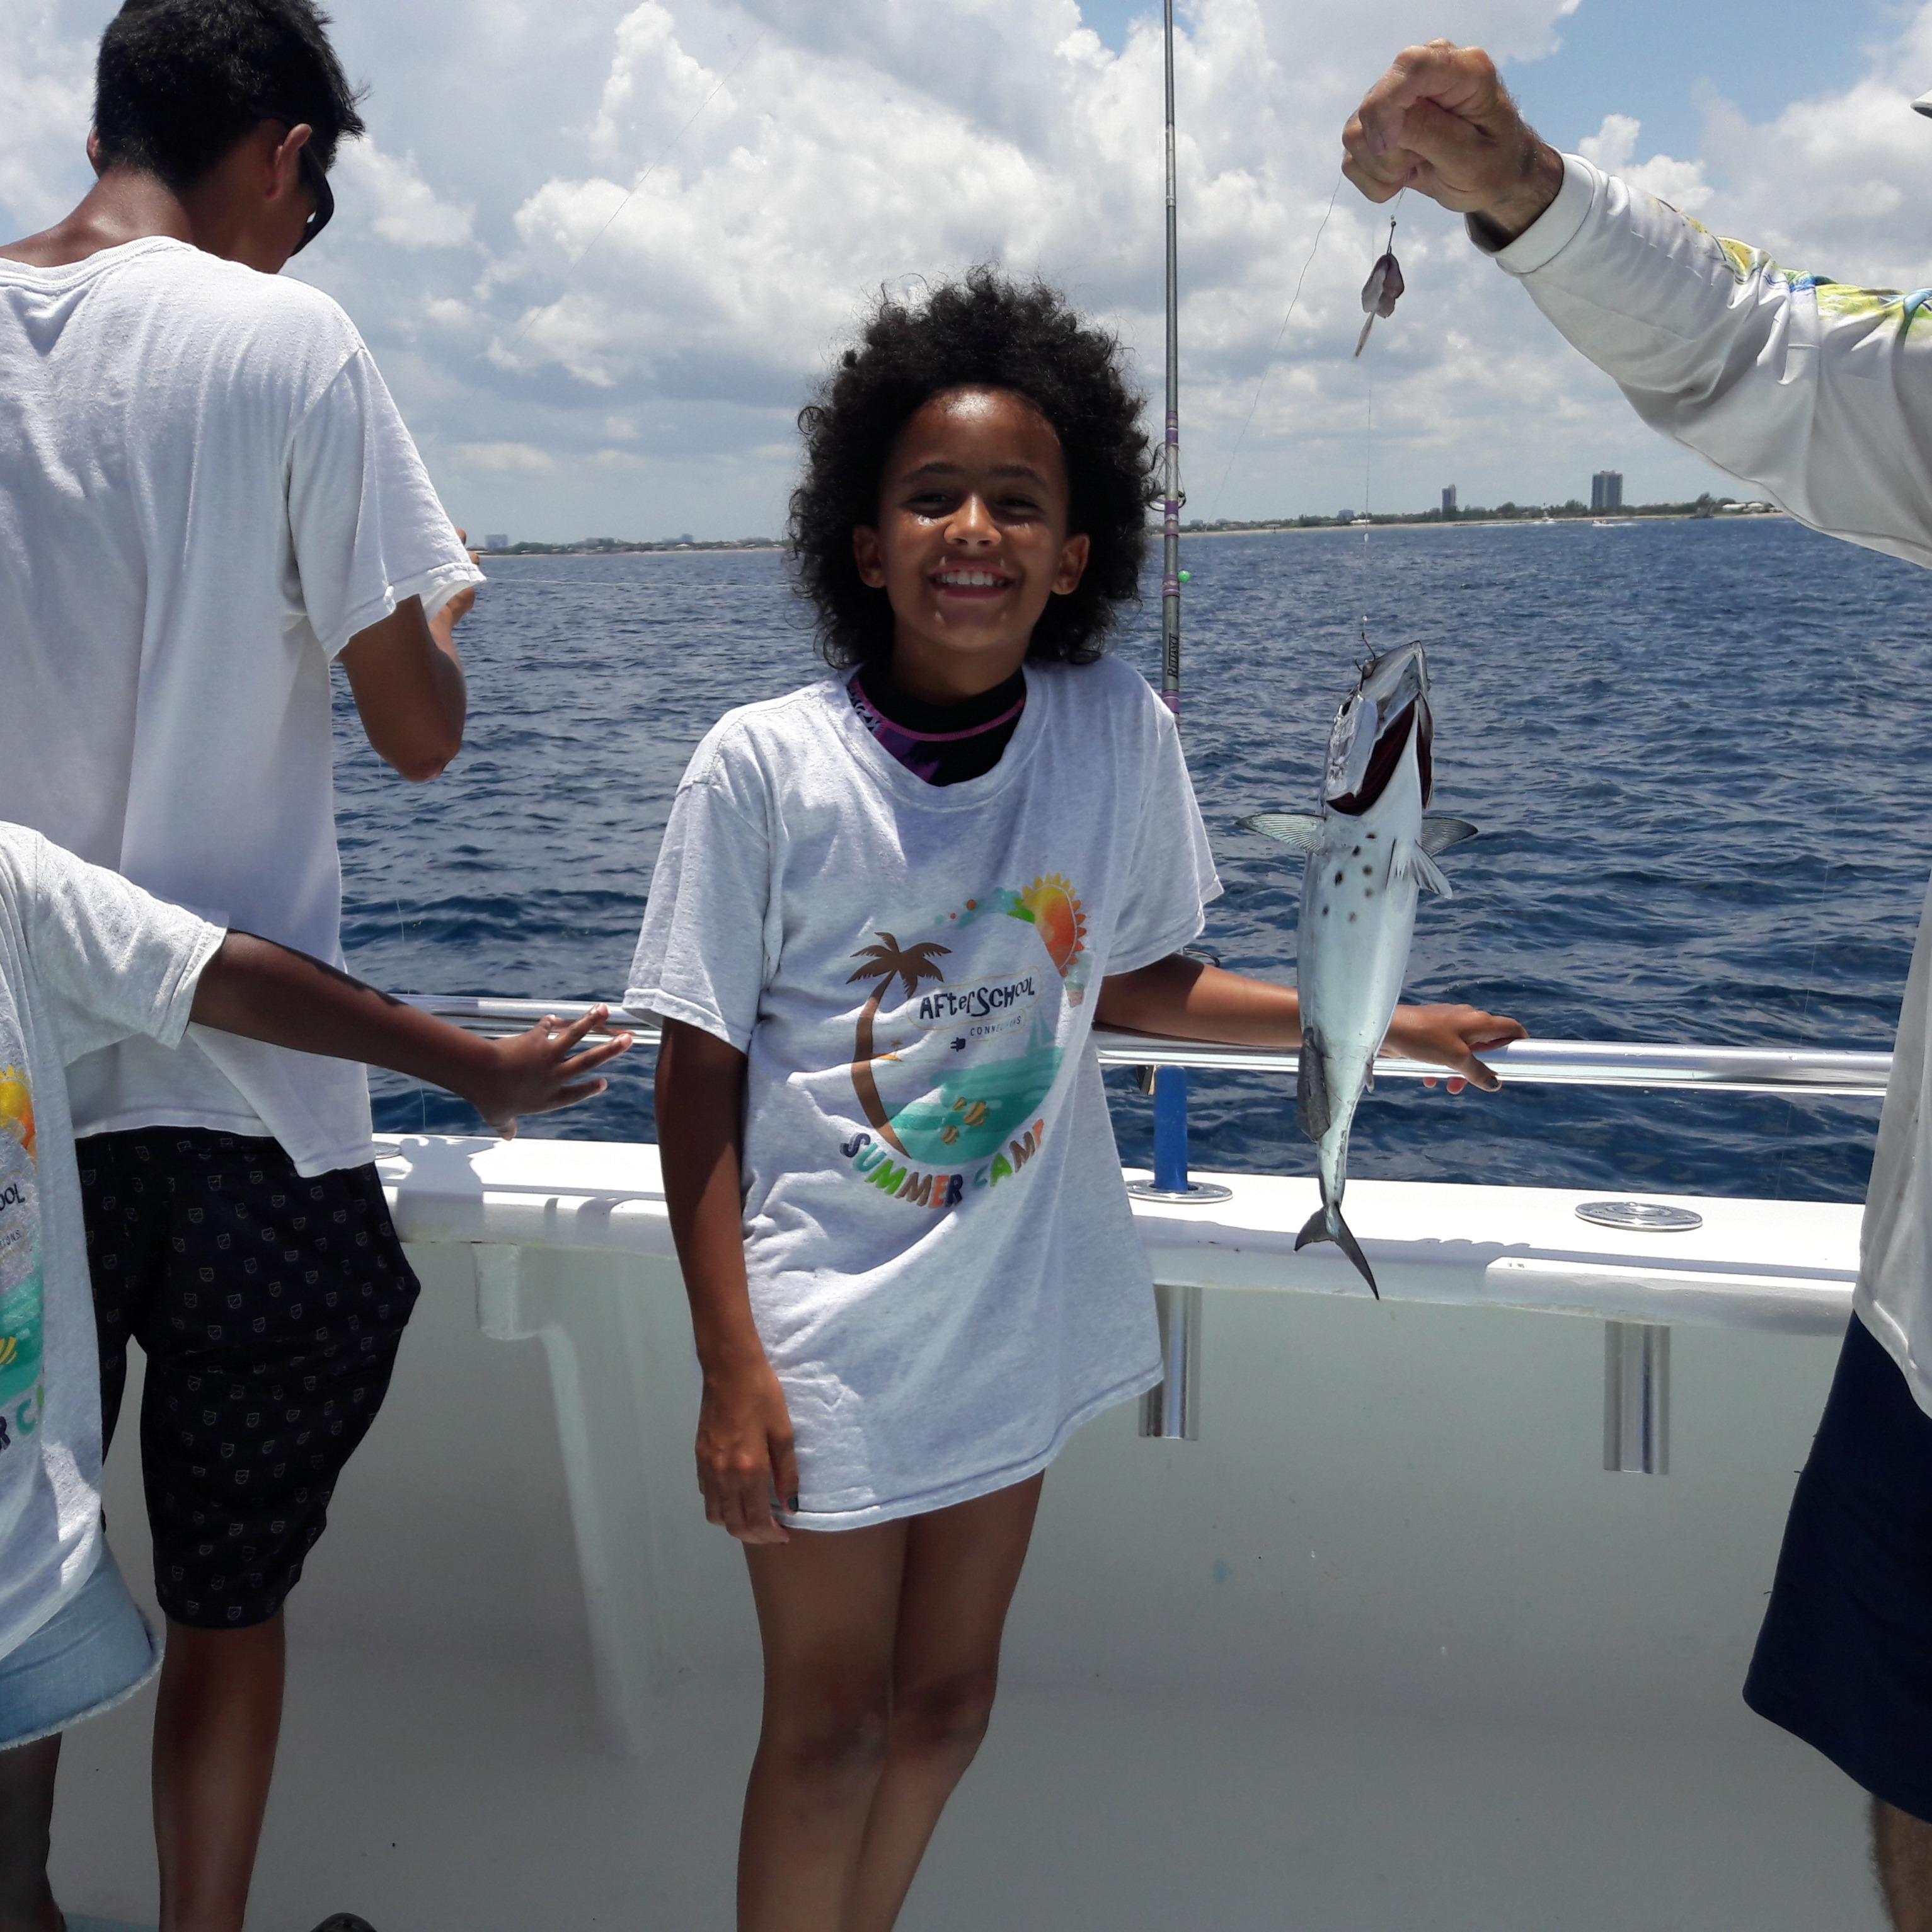 Florida Fishing Academy Boat Trip Image number 6